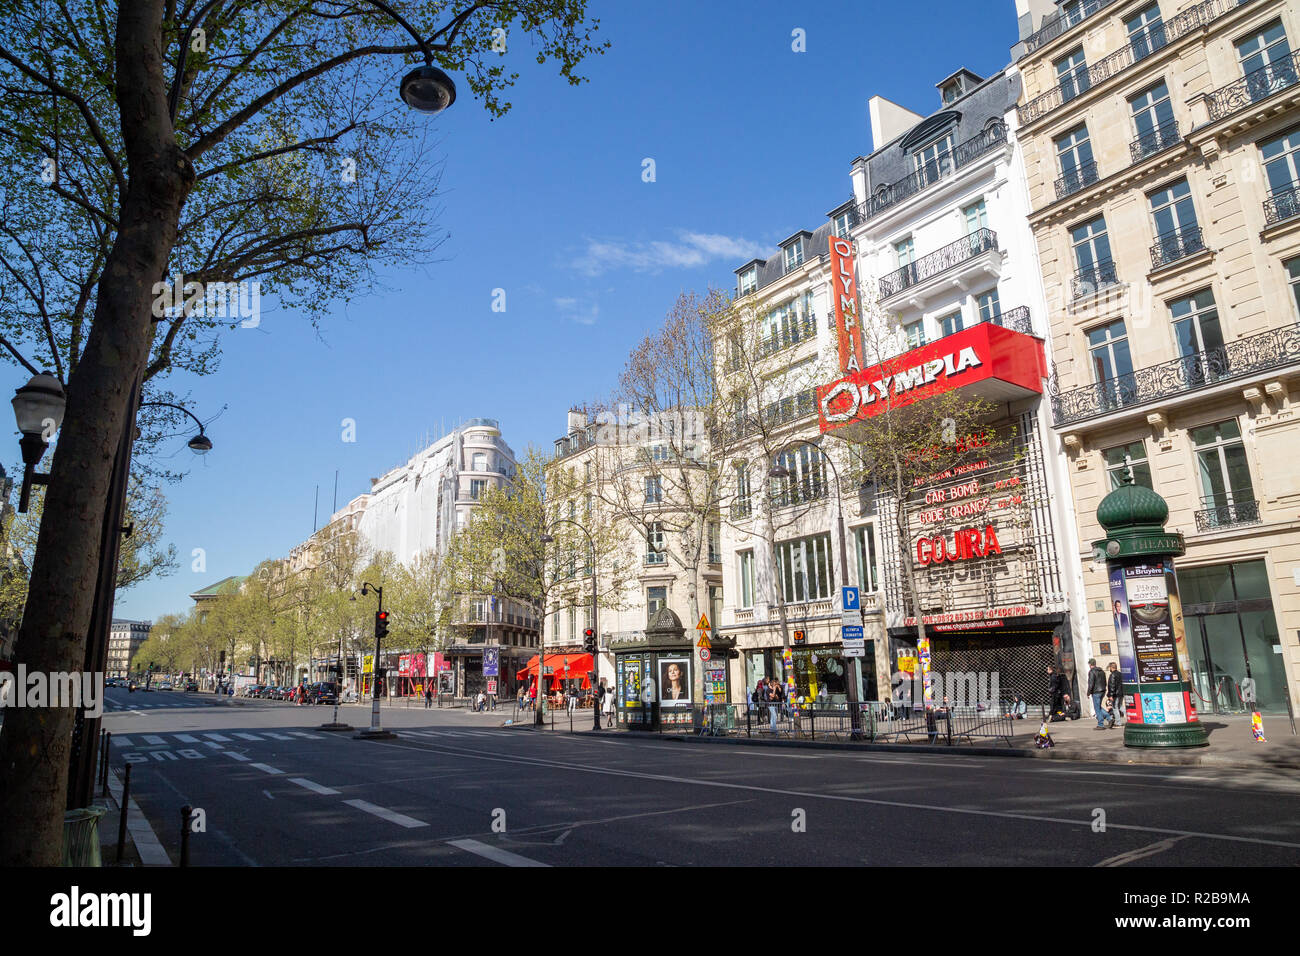 Paris/France - April 22nd 2017: L'olypmia concert hall with Gojira band sign - Stock Image